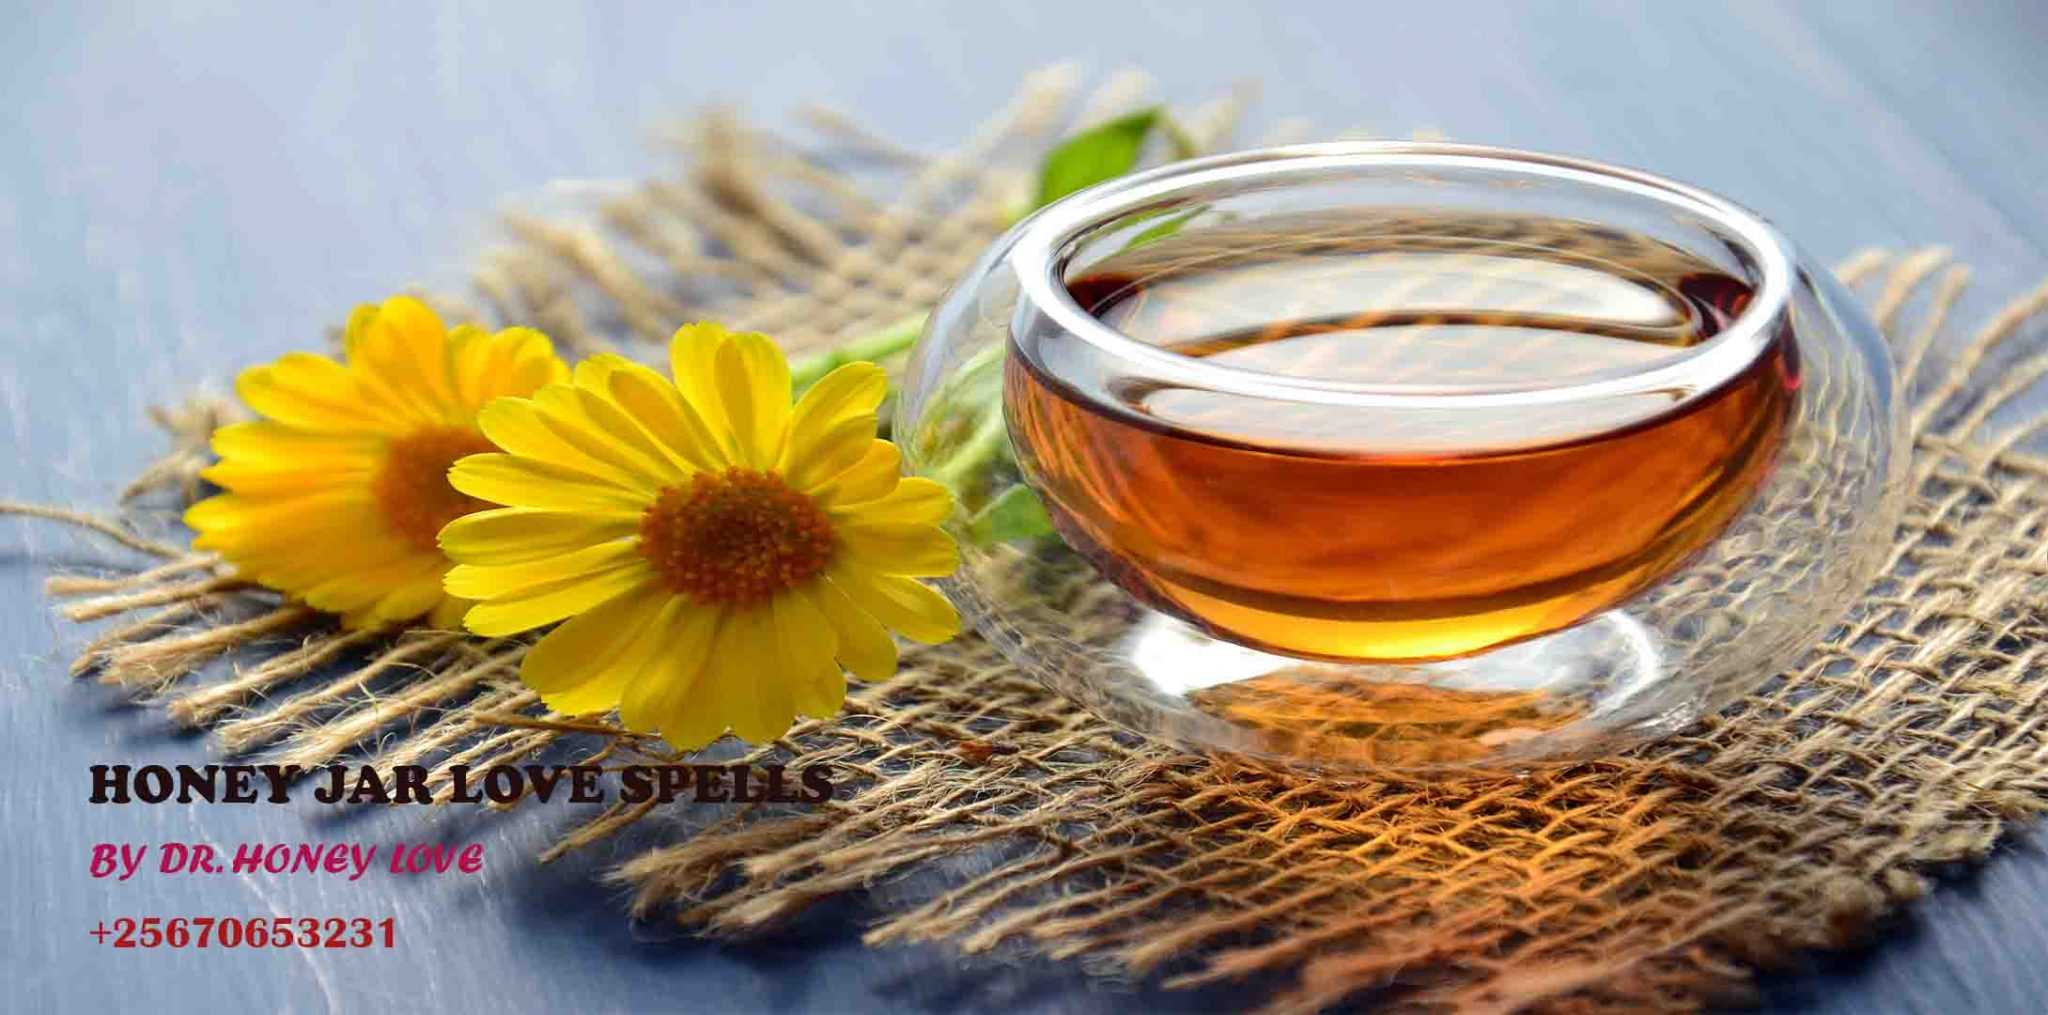 Read more about the article HONEY jar love spells